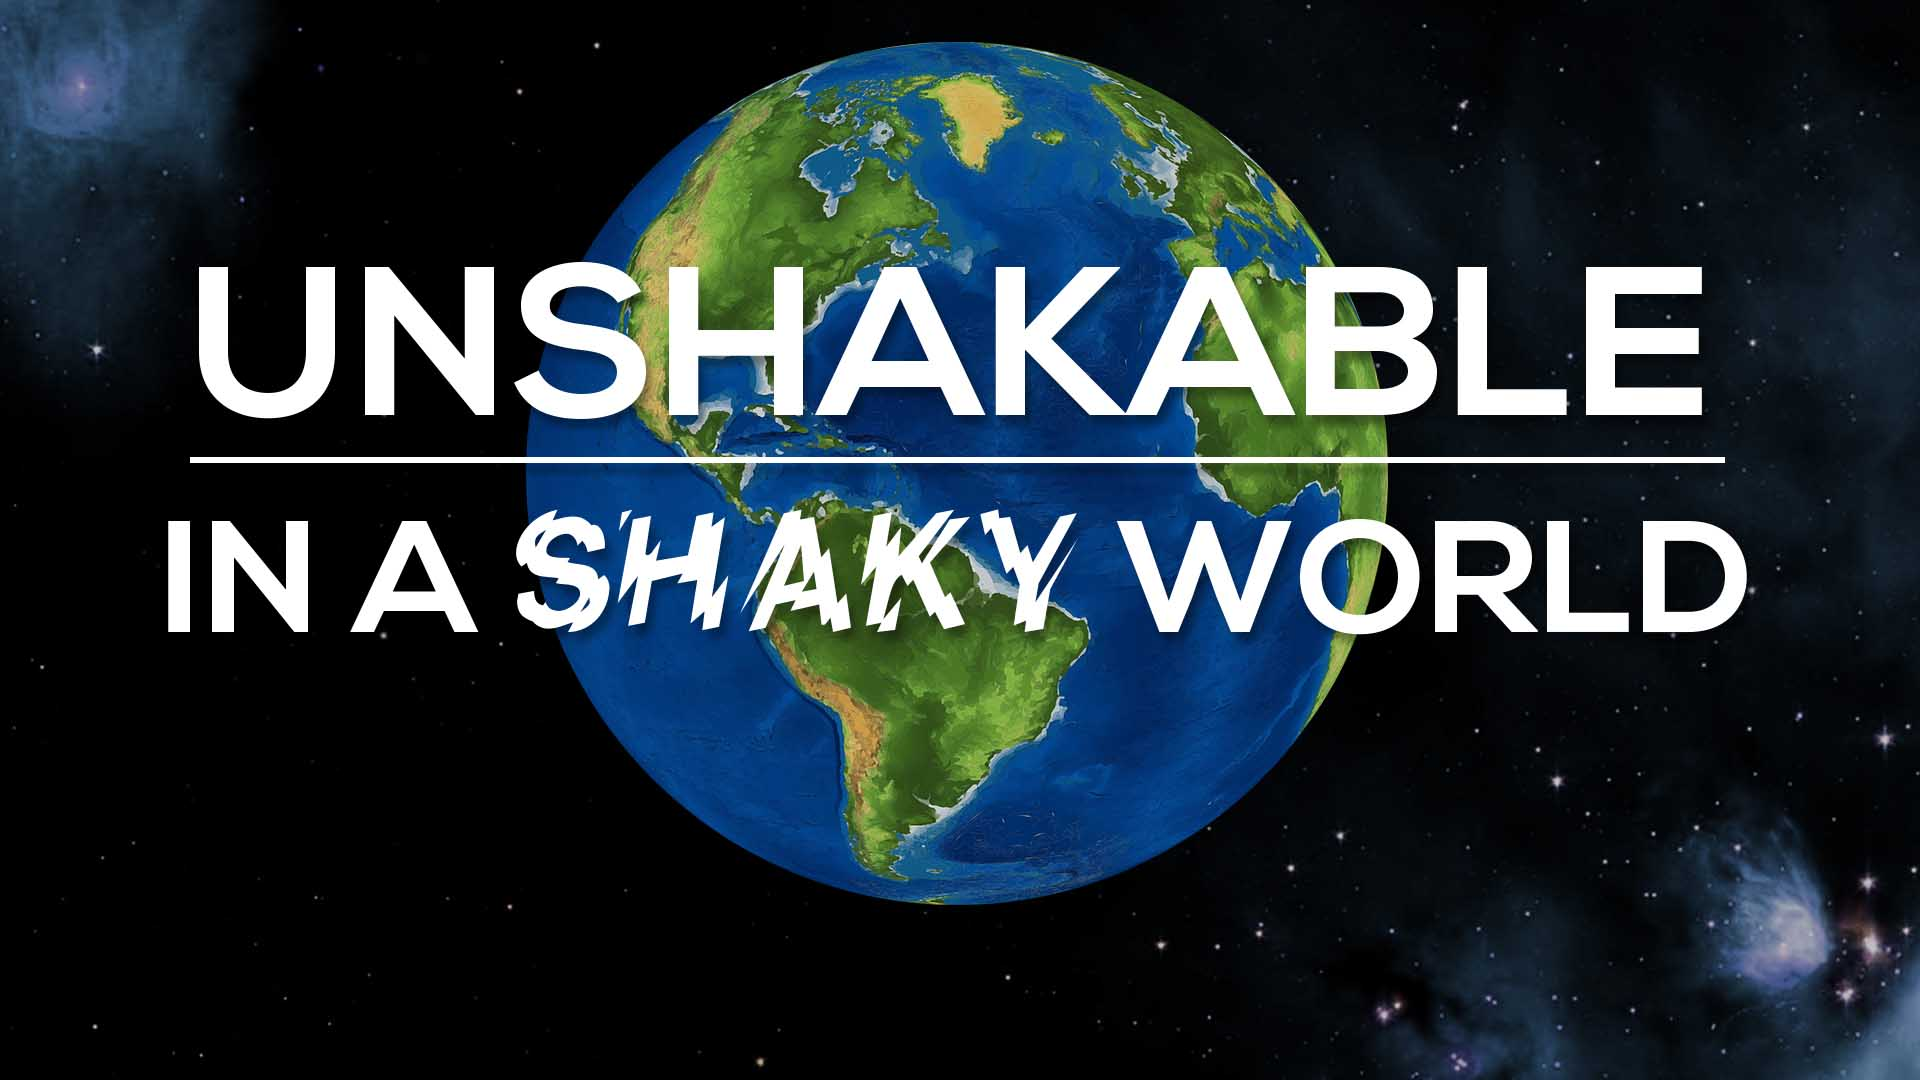 UNSHAKABLE IN A SHAKY WORLD